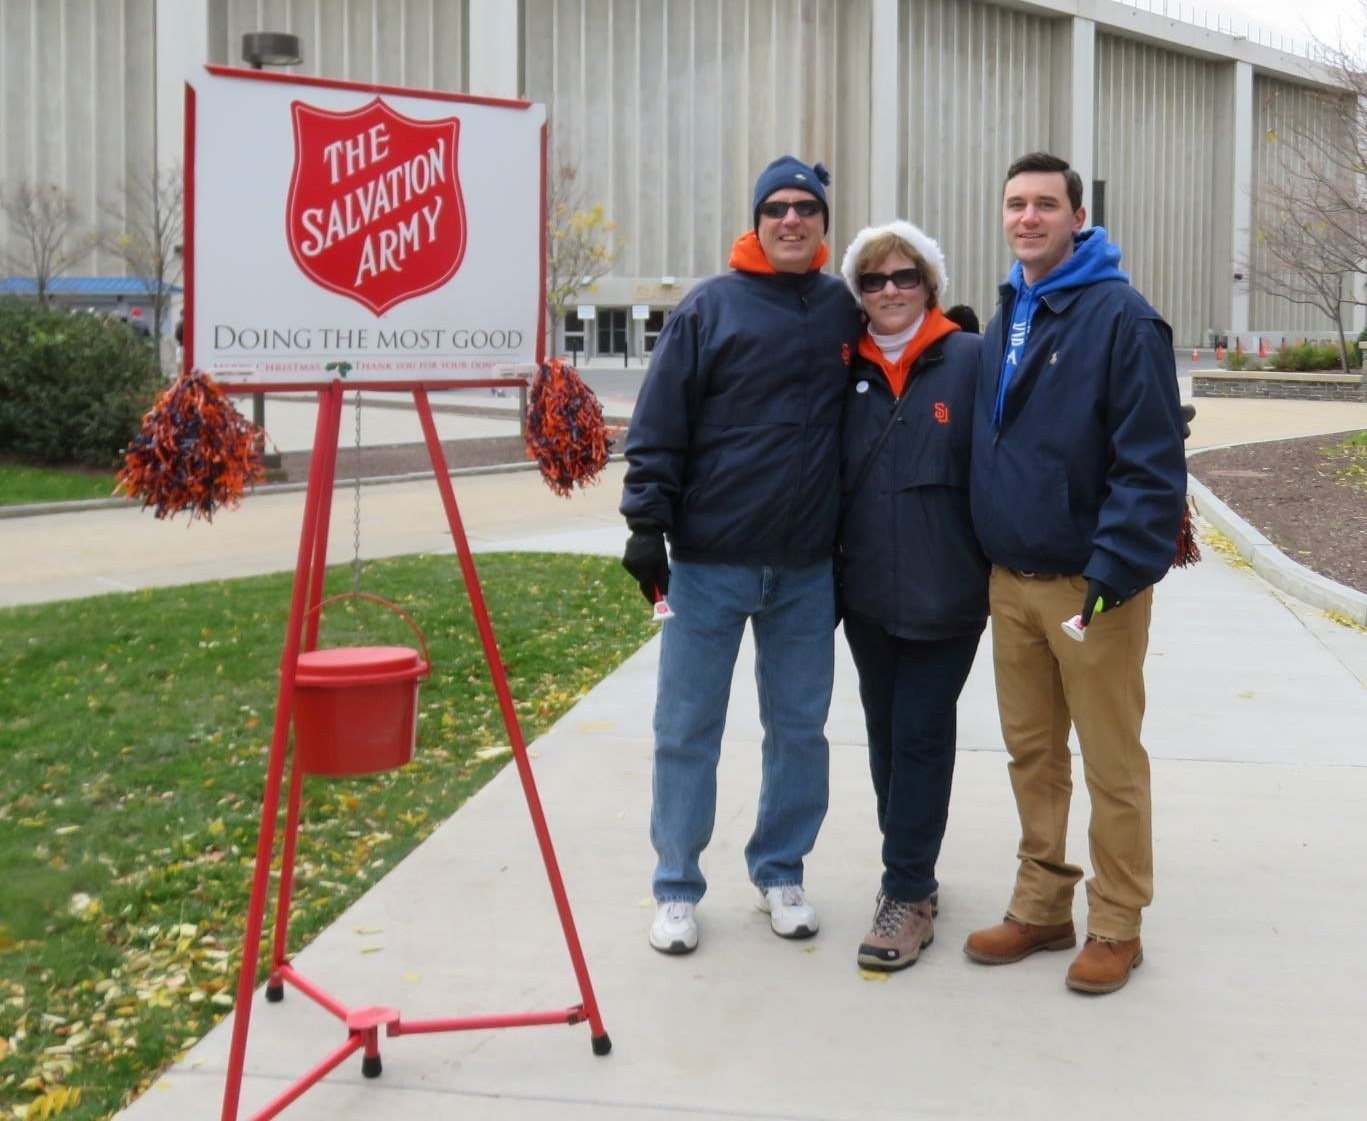 Mark, Joanne and Brian Balduzzi ringing the bell for Salvation Army on campus